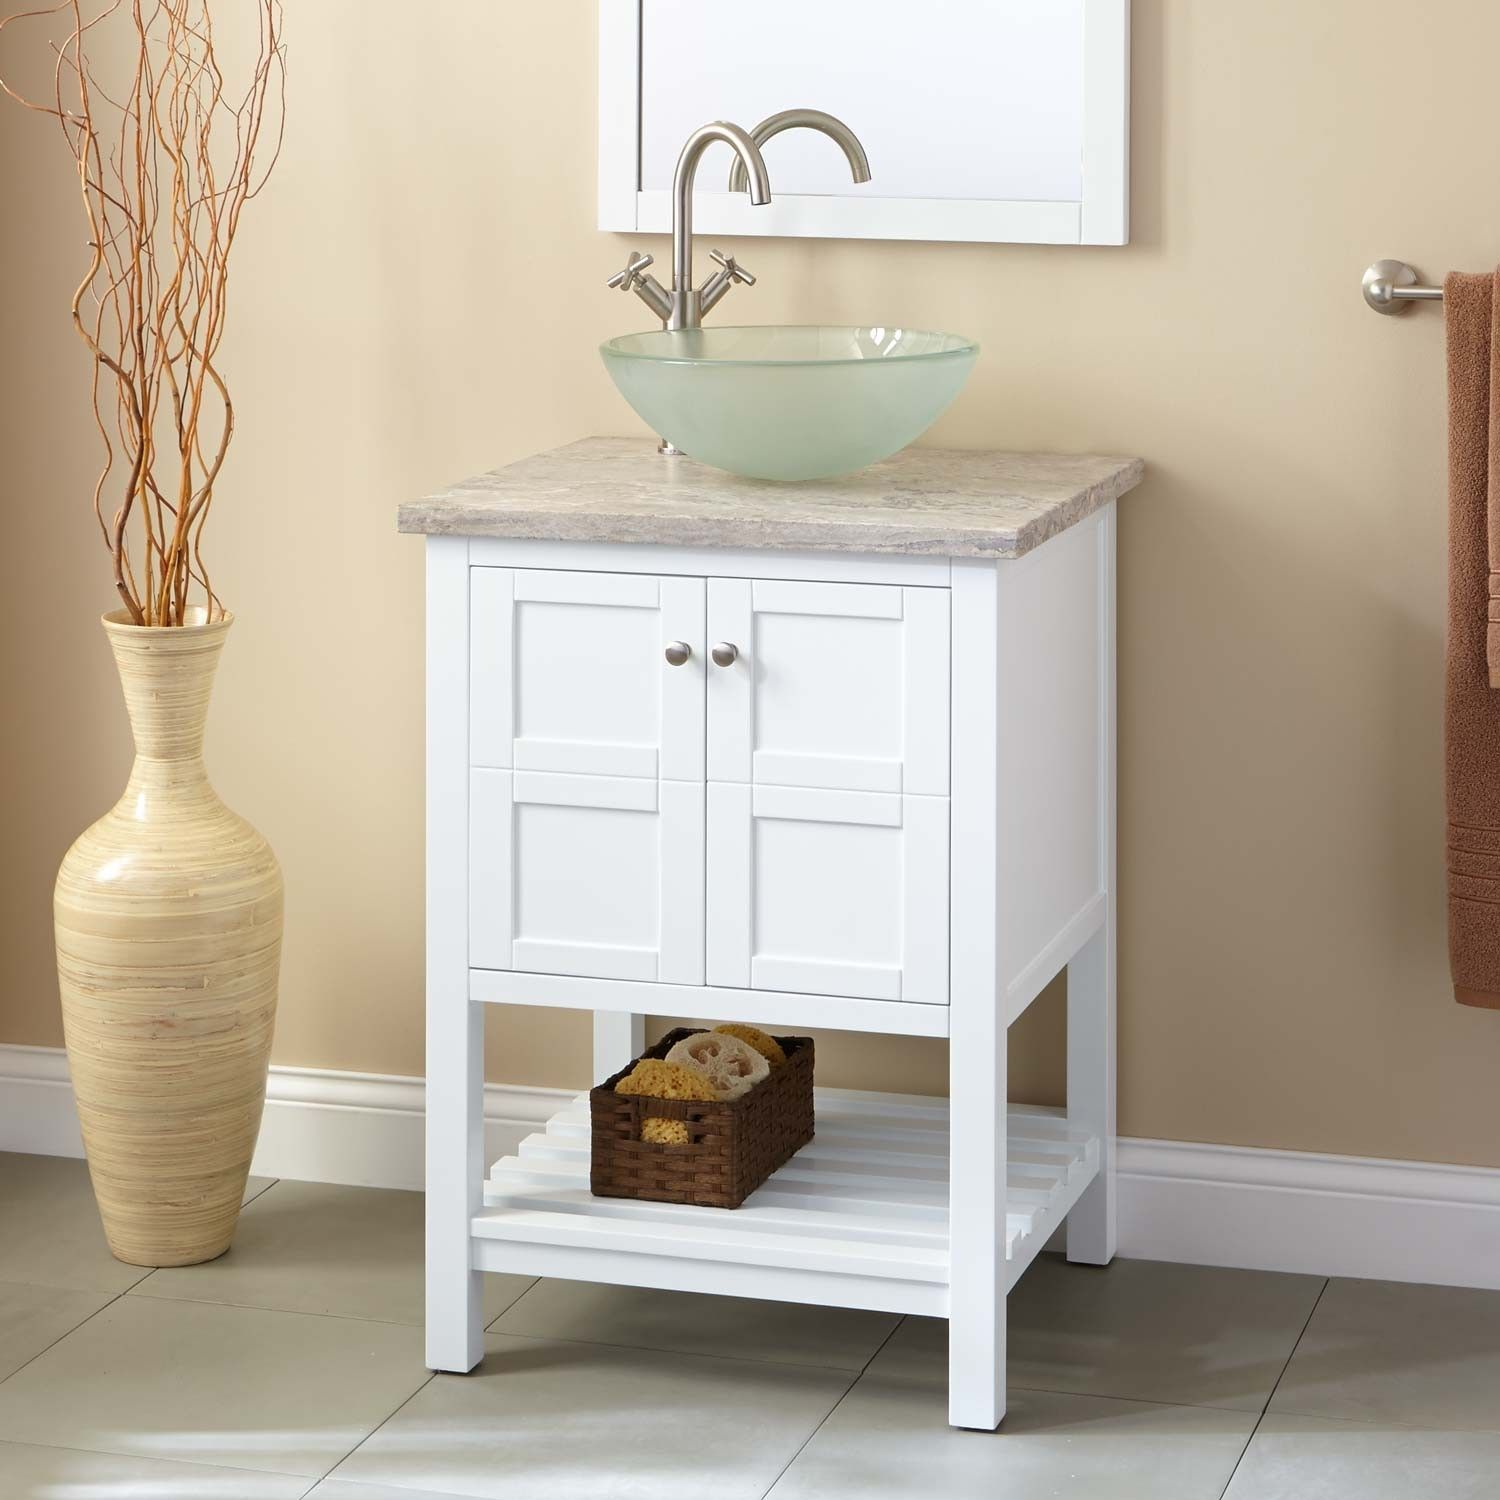 30 24 Inch Bathroom Vanity For Your Informations 24 Inch